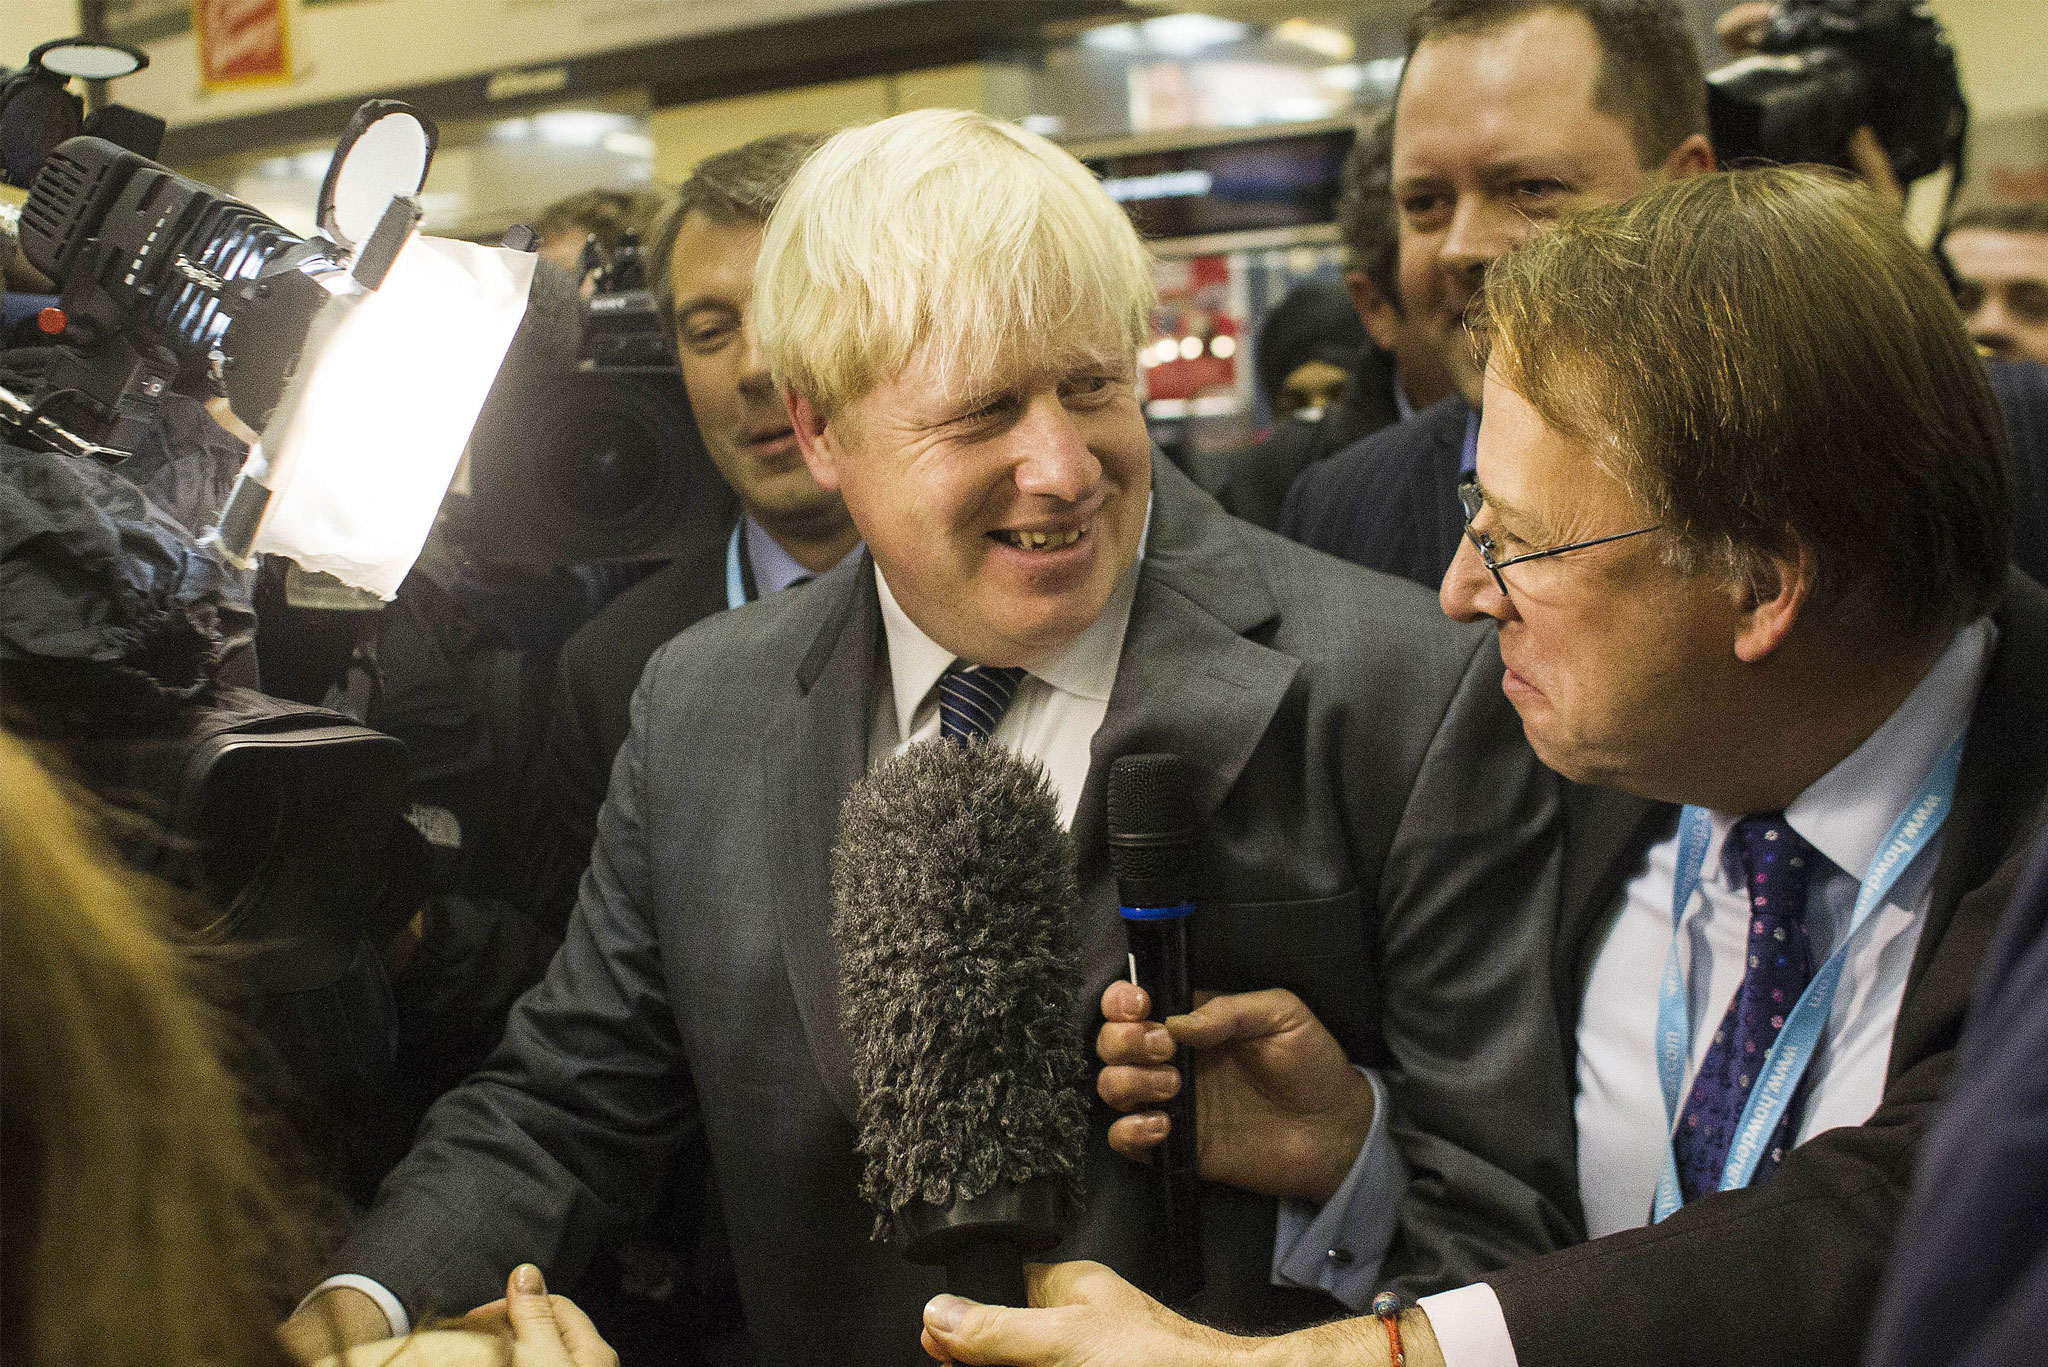 Michael Crick interviews Boris Johnson.